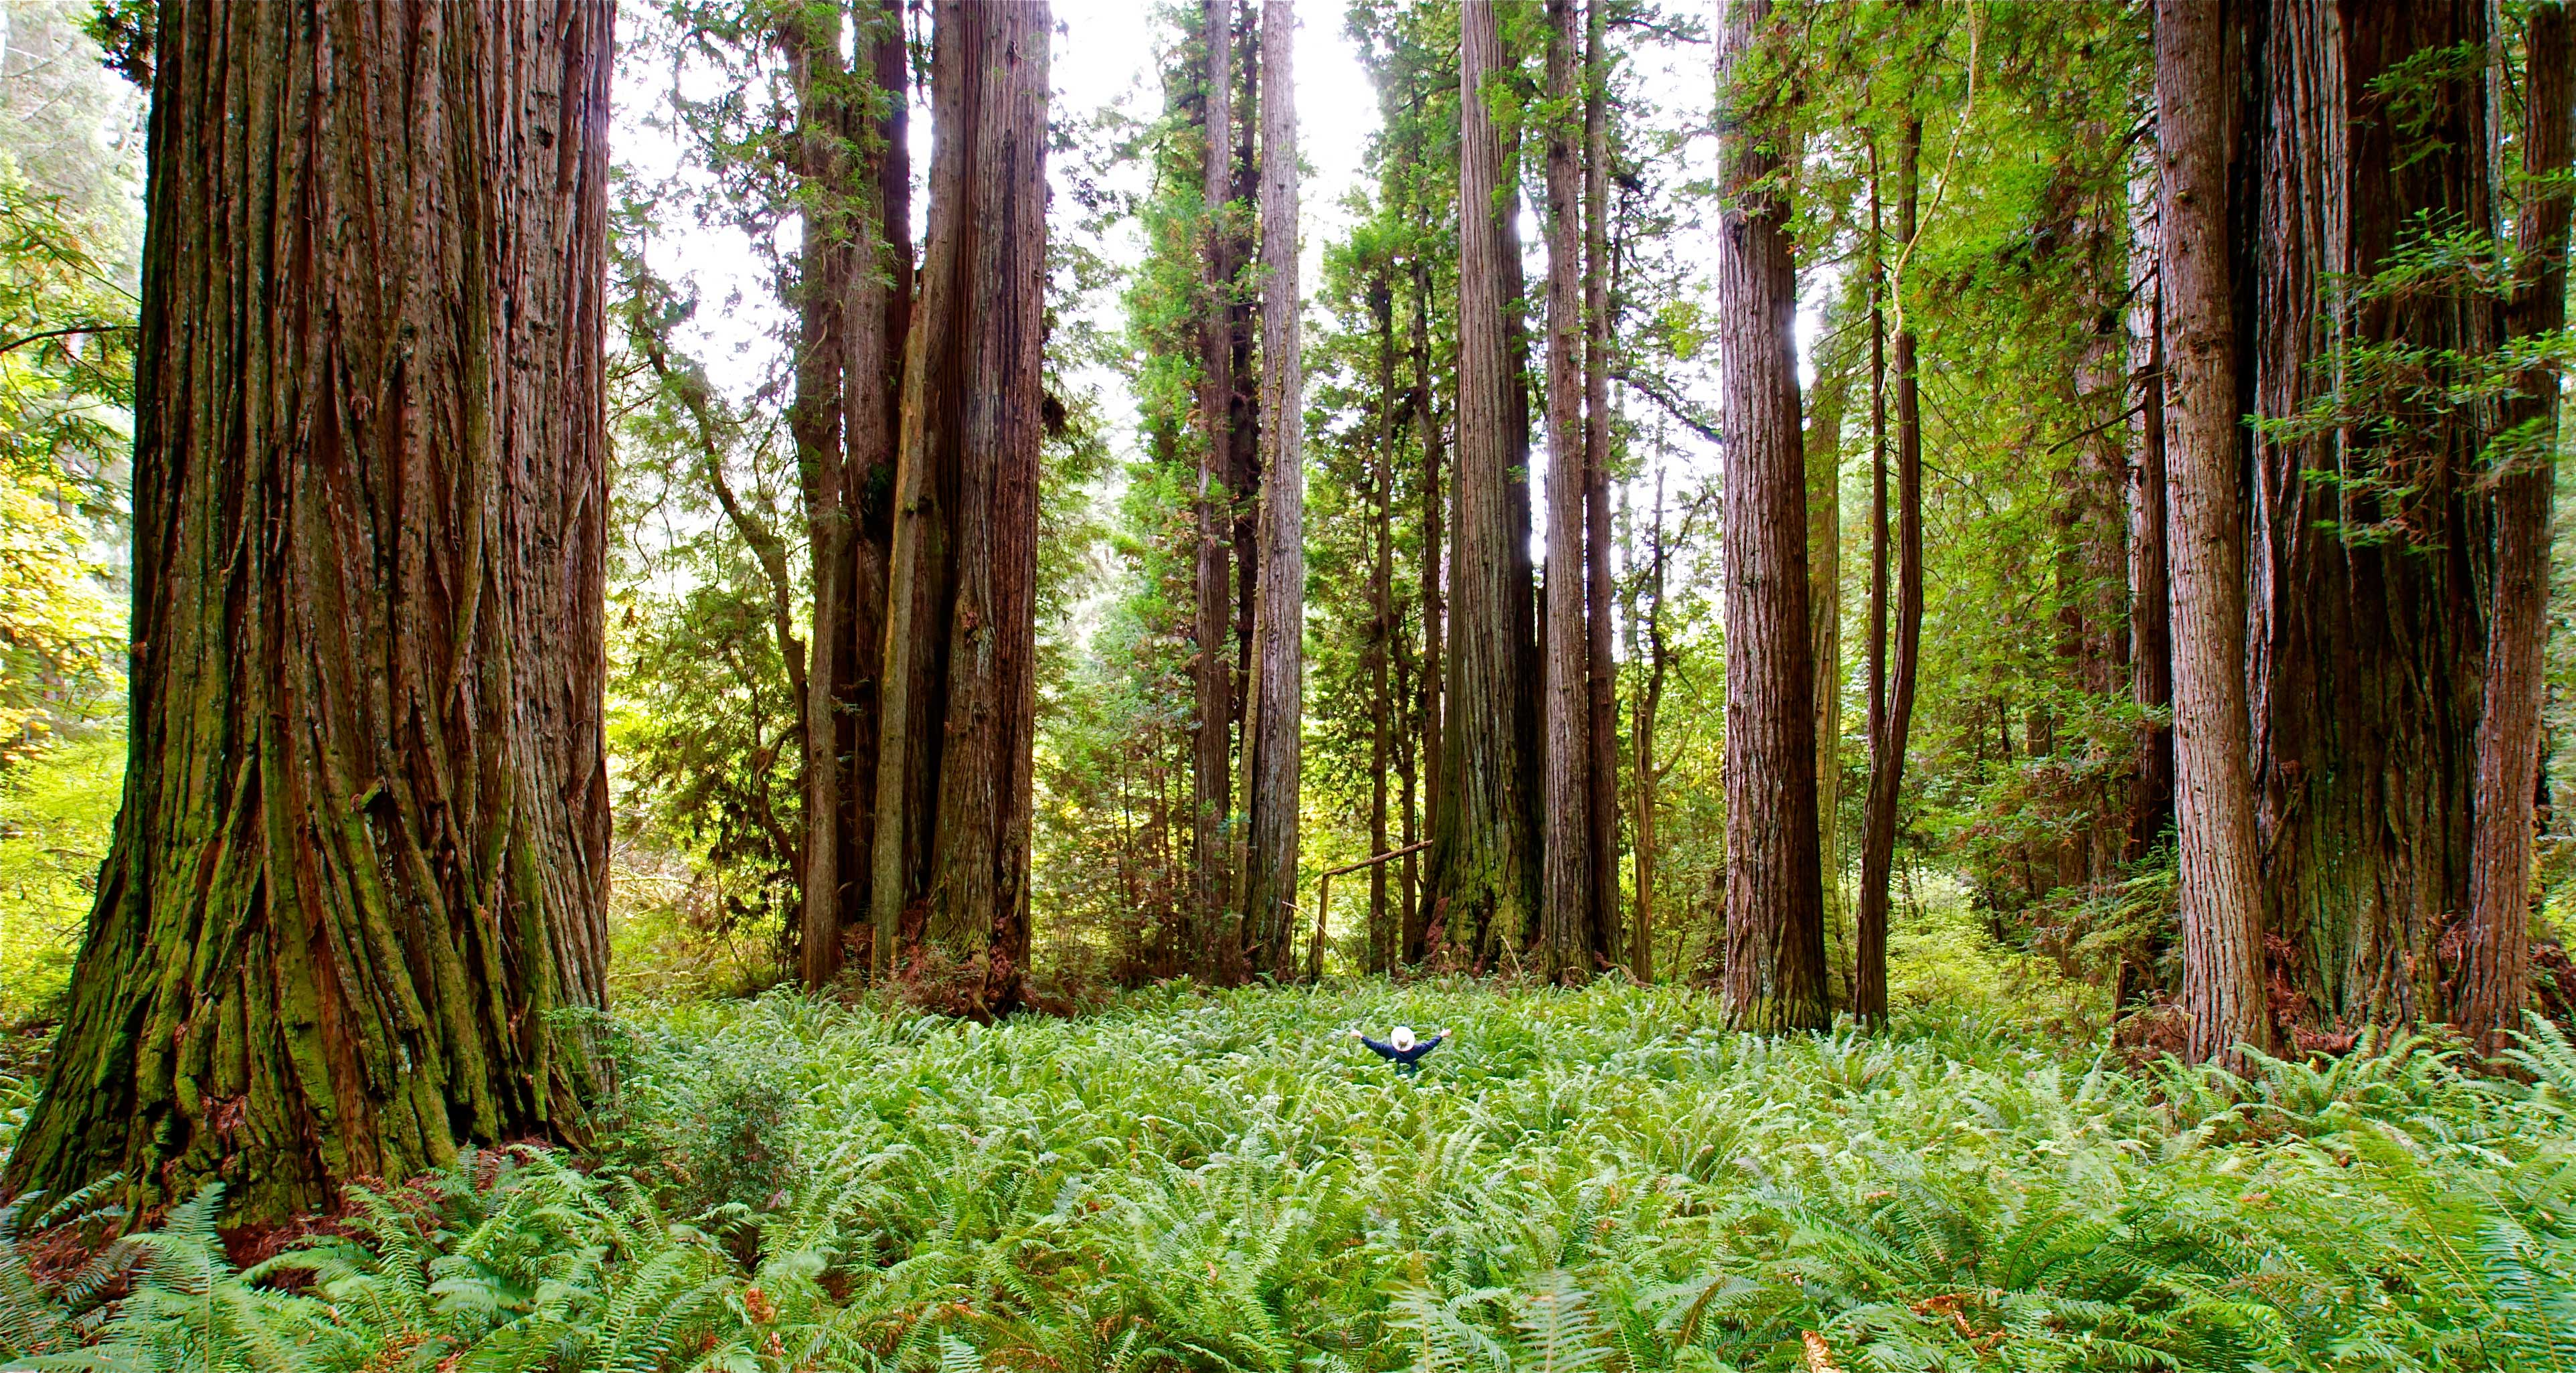 Prairie Creek Redwoods SP